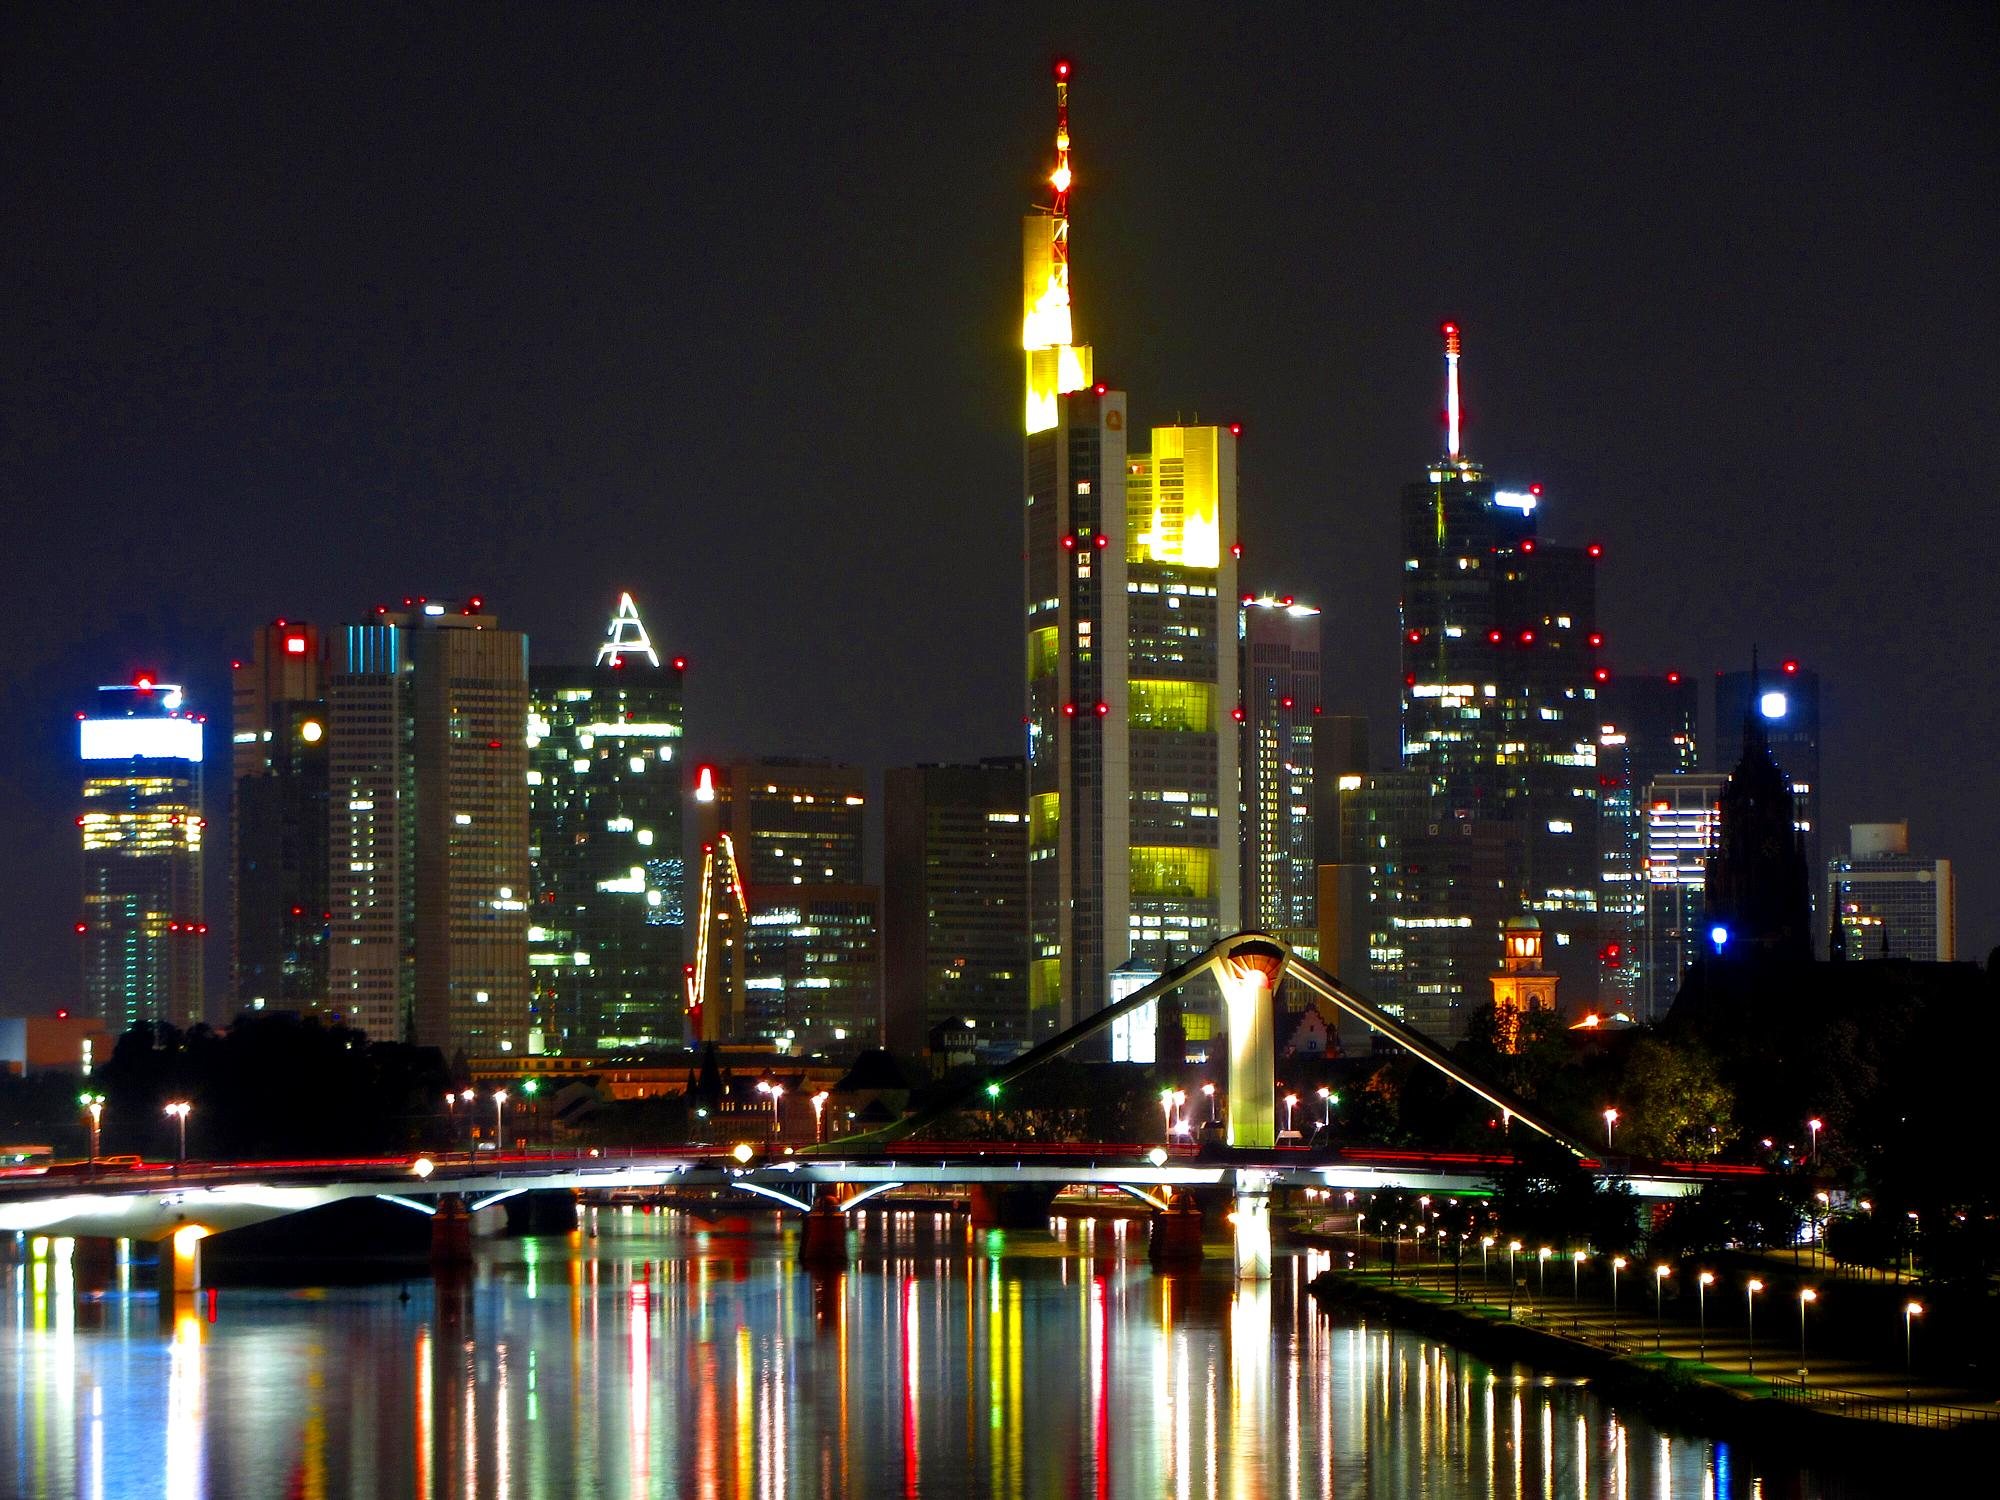 The Frankfurt skyline at night